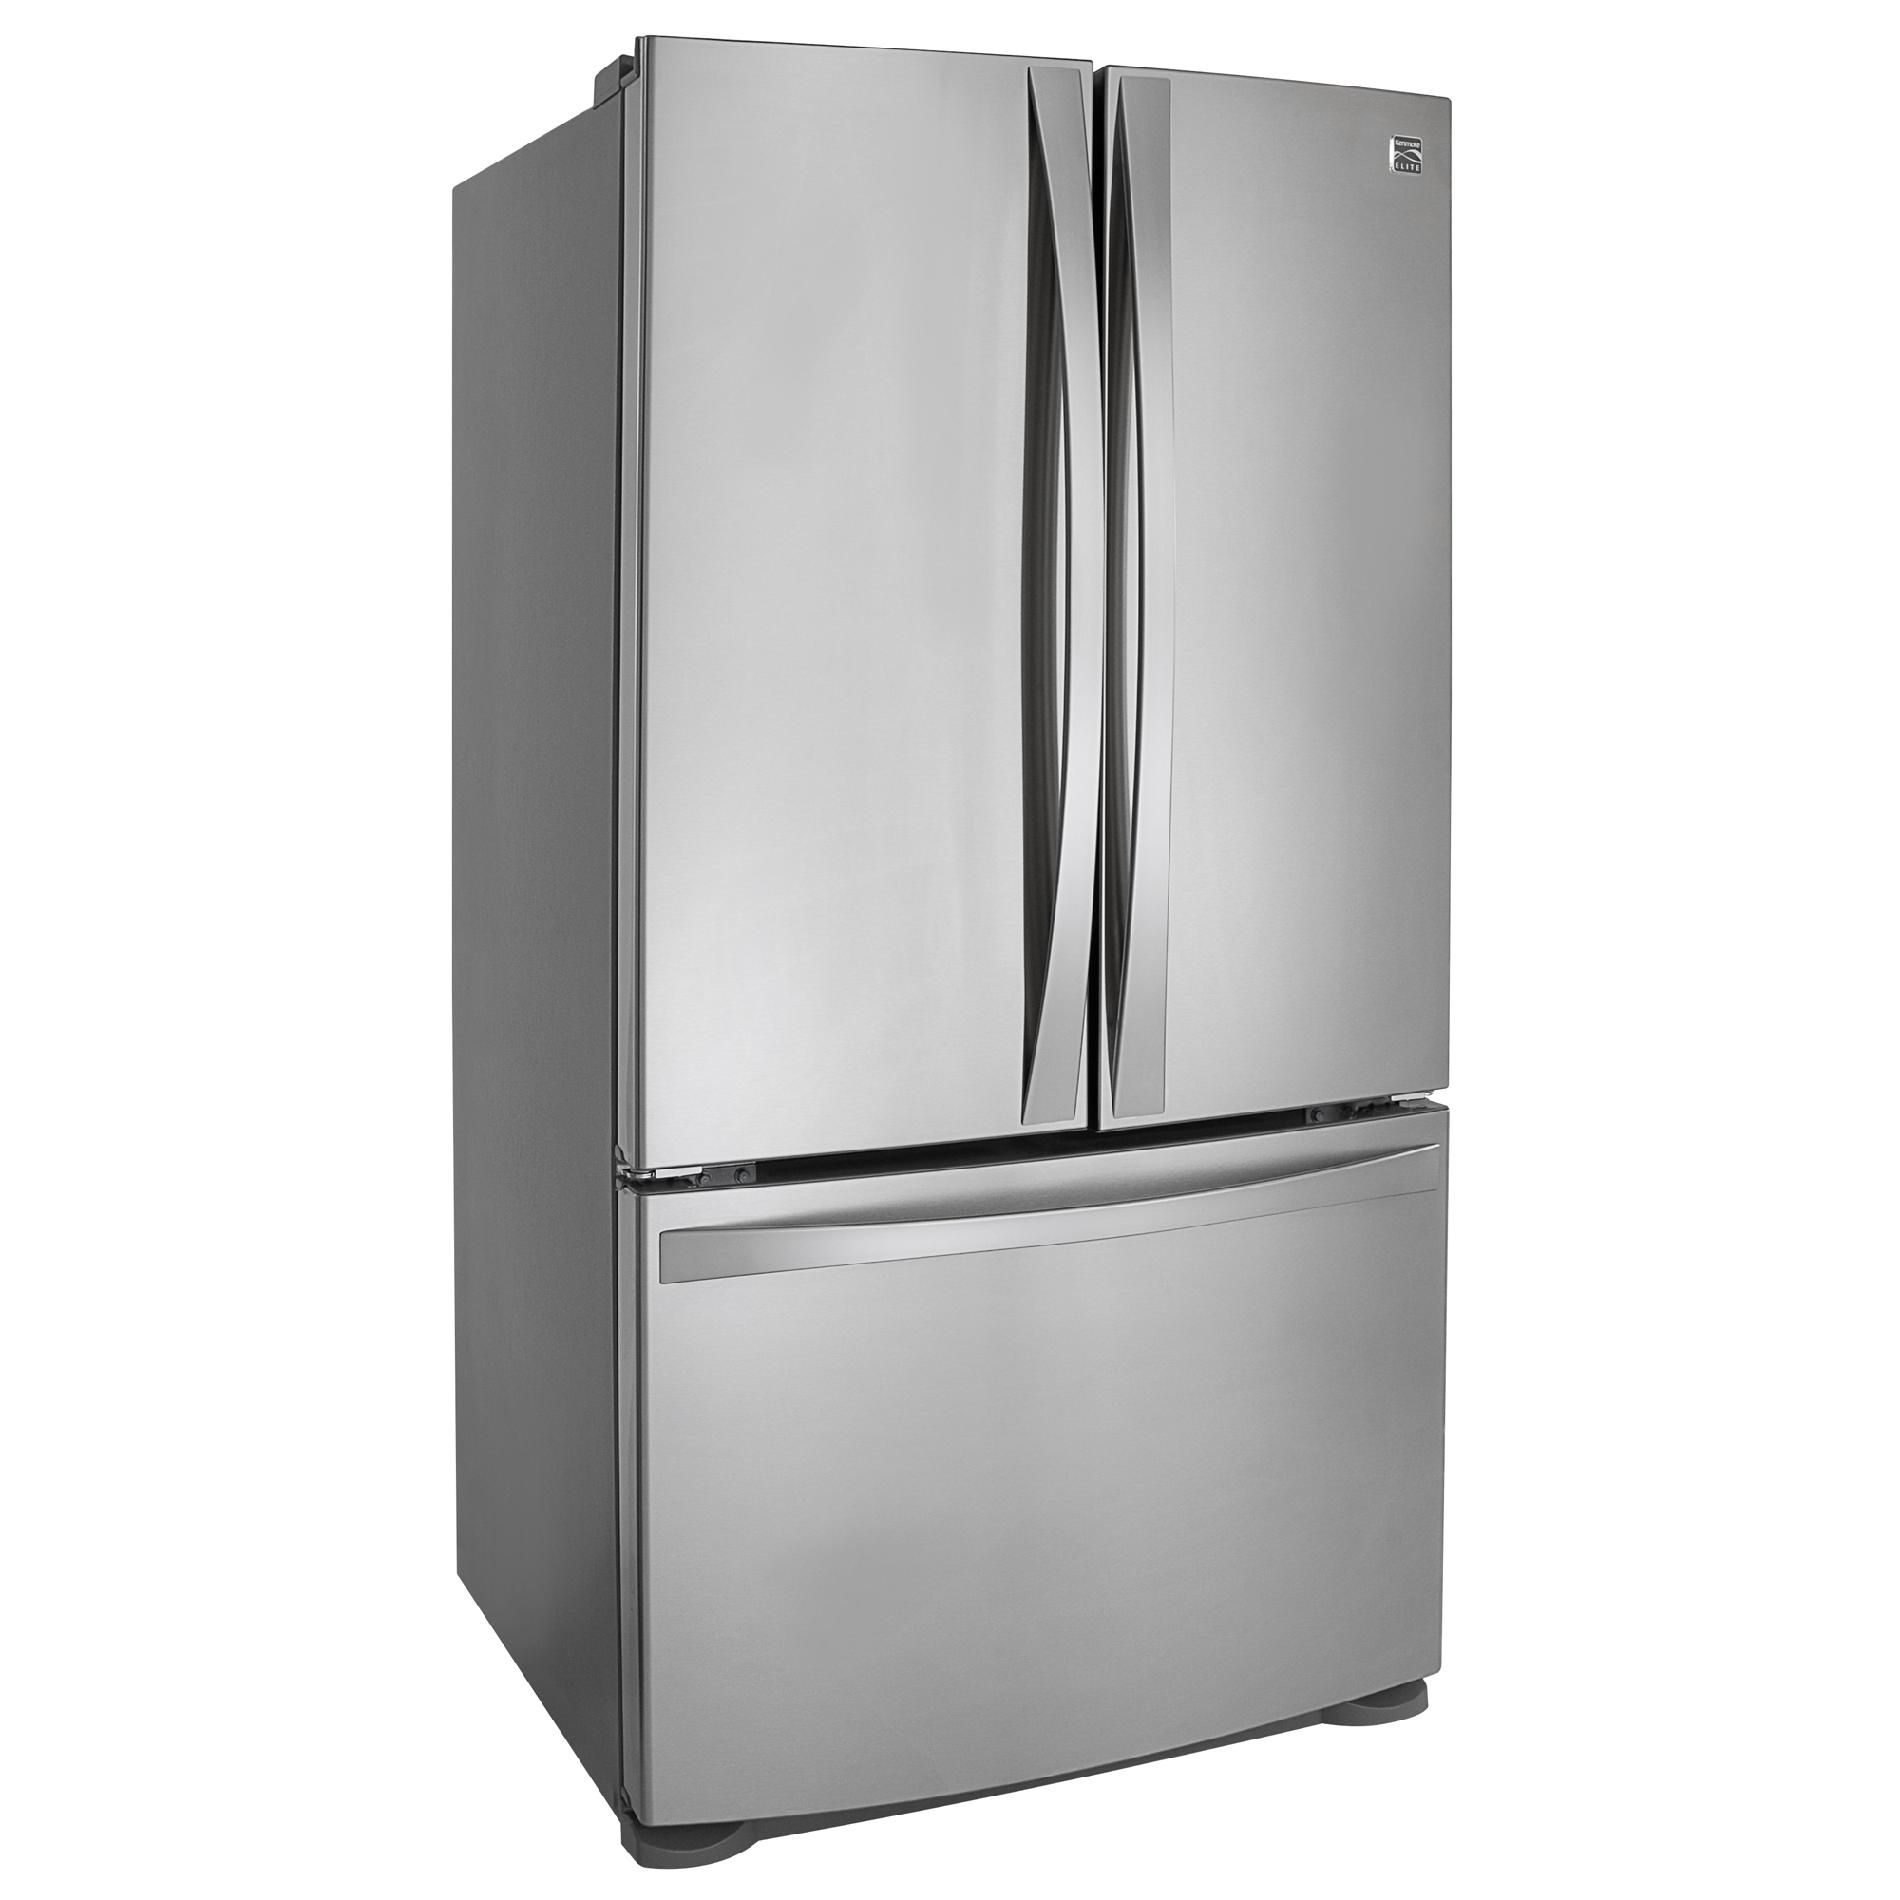 Kenmore Elite 25 cu. ft. French-Door Bottom-Freezer Refrigerator Non-Dispenser - Stainless Steel